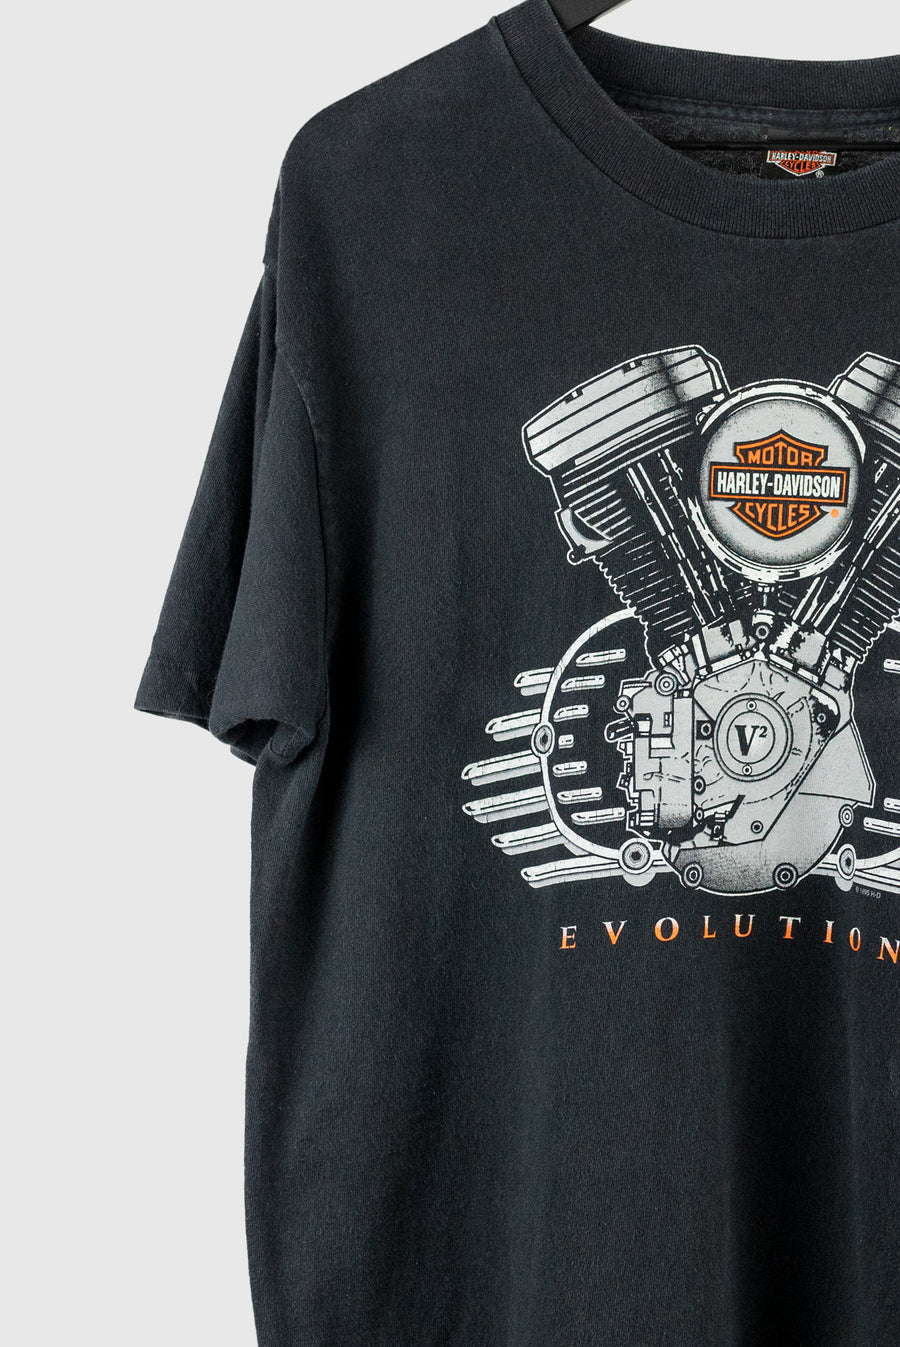 90s Harley Evolution Tee